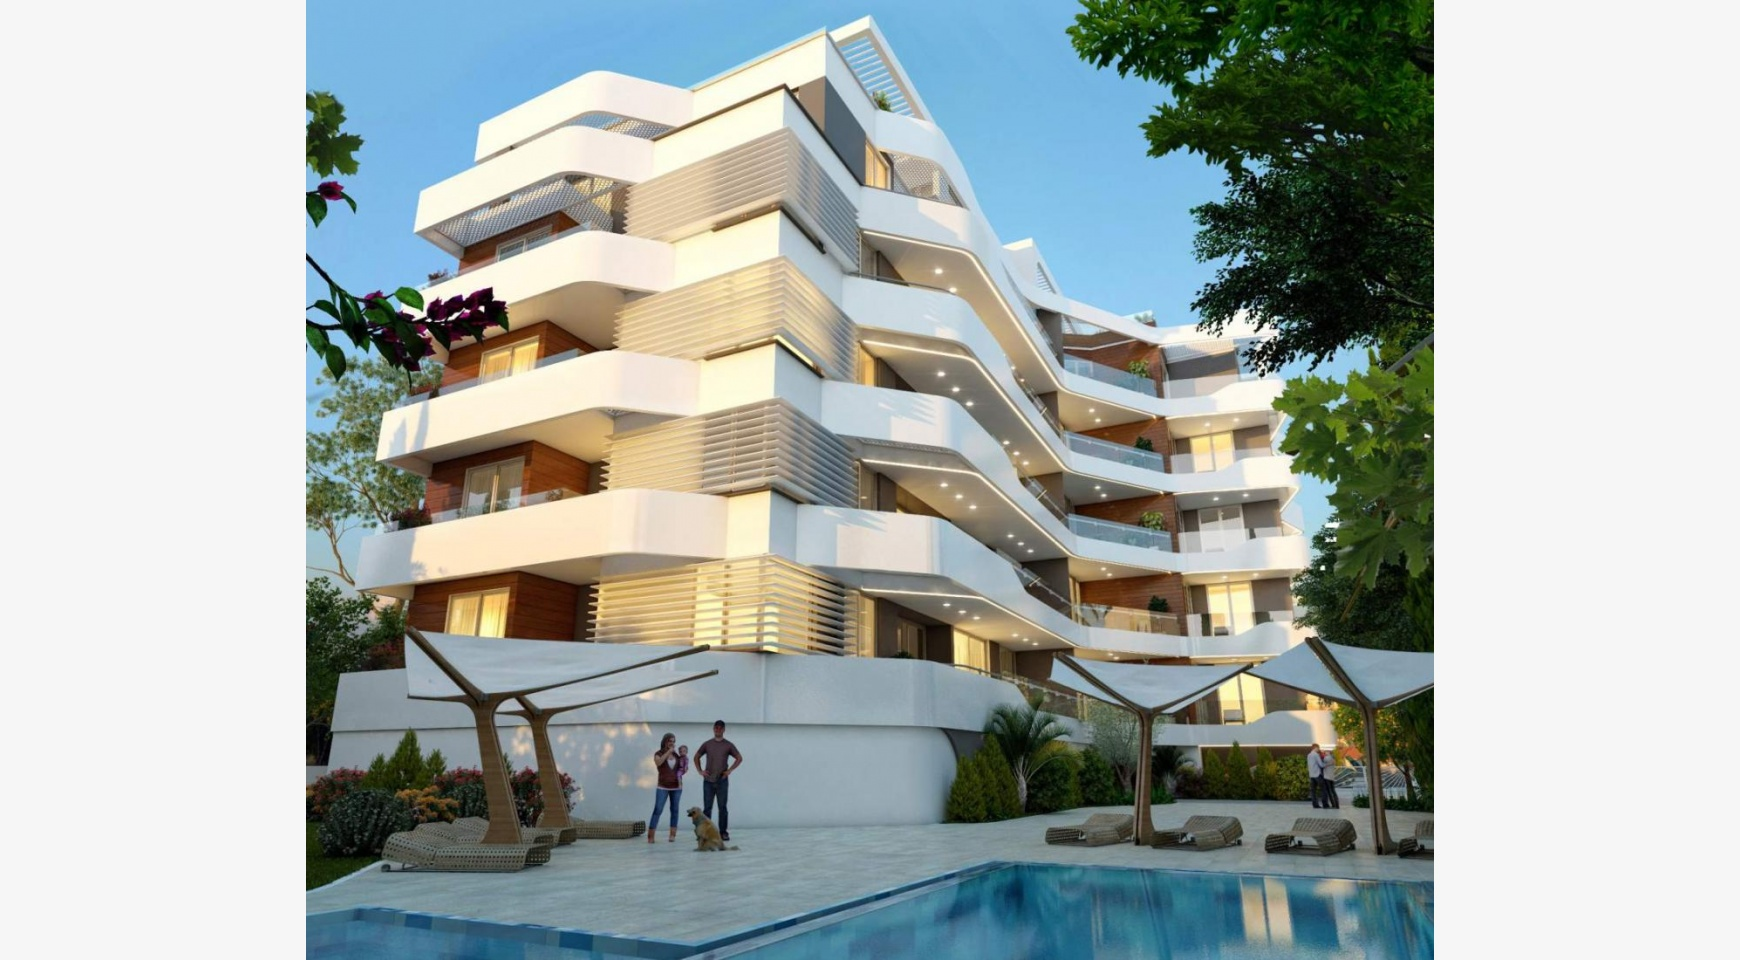 New 3 Bedroom Apartment in a Contemporary Complex near the Sea - 3